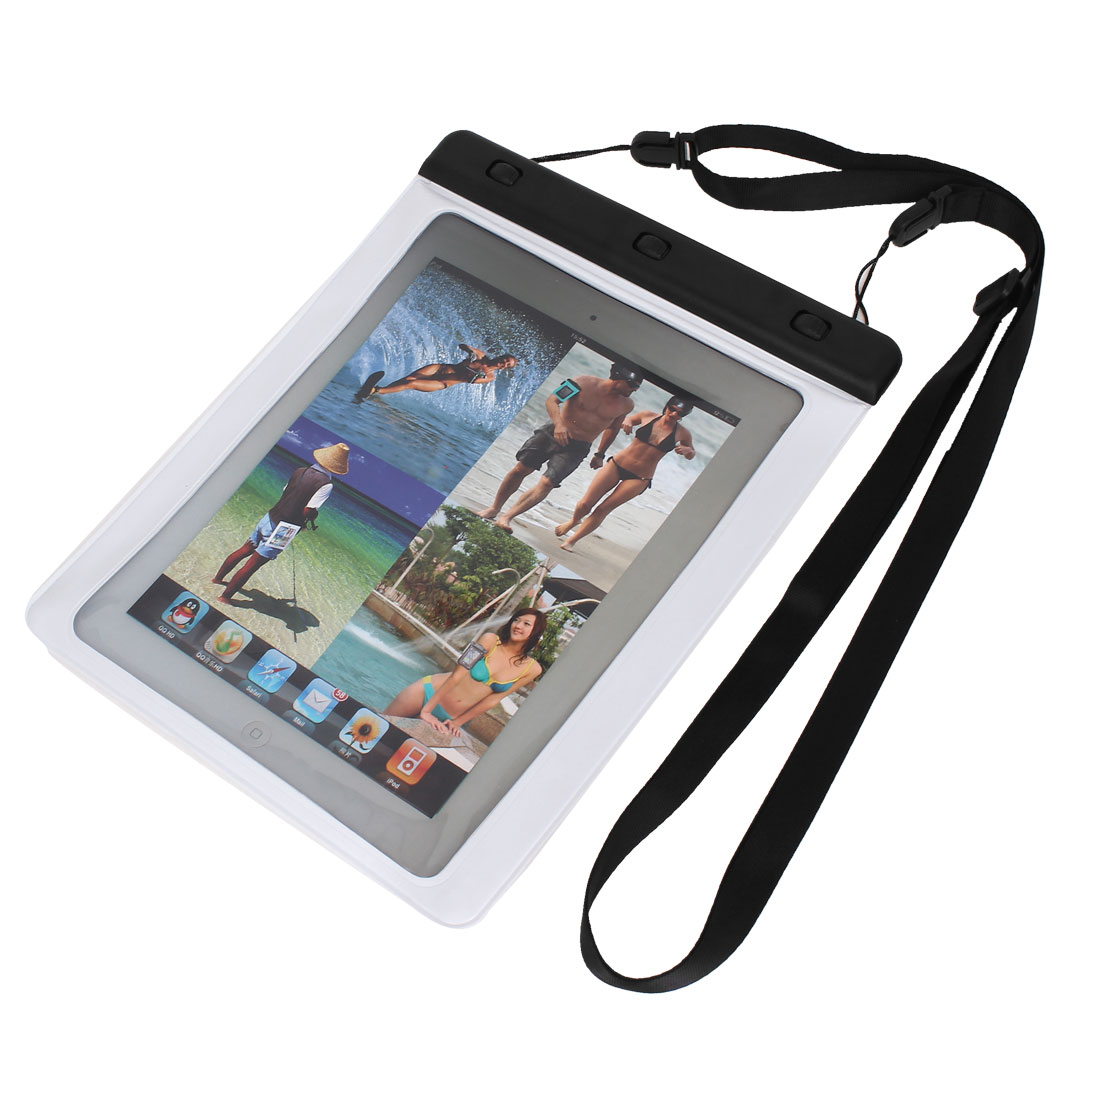 "Waterproof Sleeve Case Bag Cover White for 9.7"" 10"" 10.1"" Tablet PC PAD"